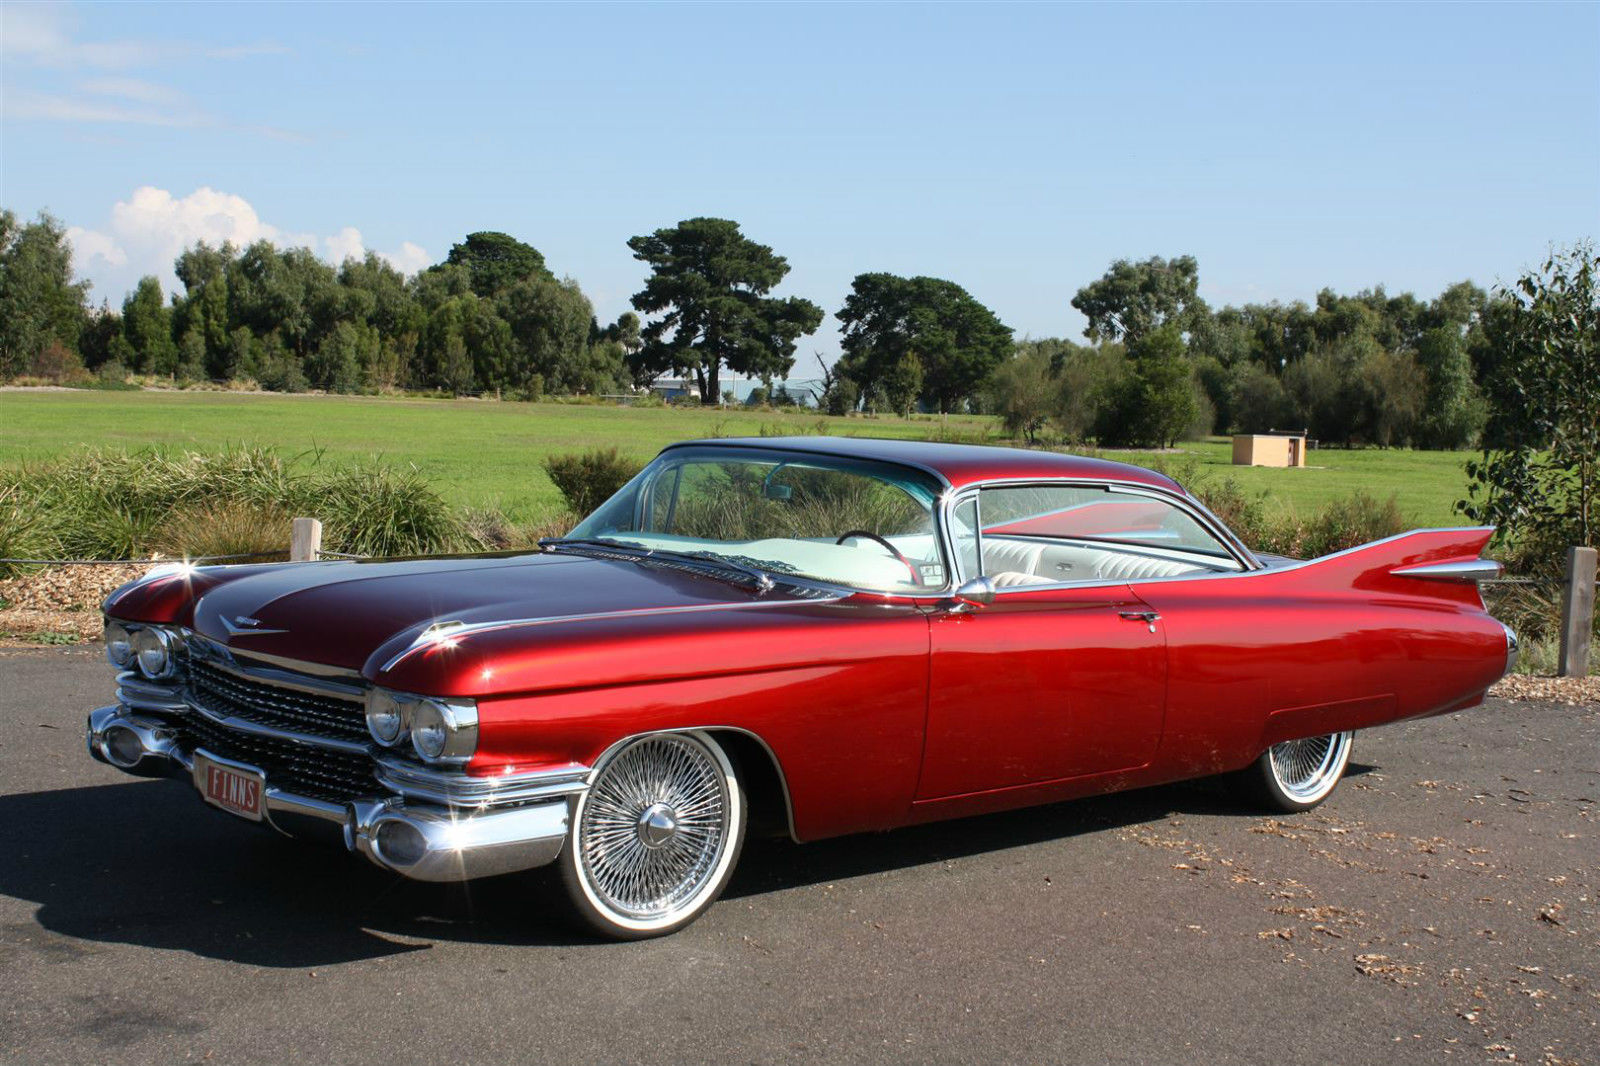 1959 Cadillac Fuse Box 22 Wiring Diagram Images Diagrams Switch Is Red Series 62 Coupe Deville Candy Custom Built Show Car 390cbi V8 10